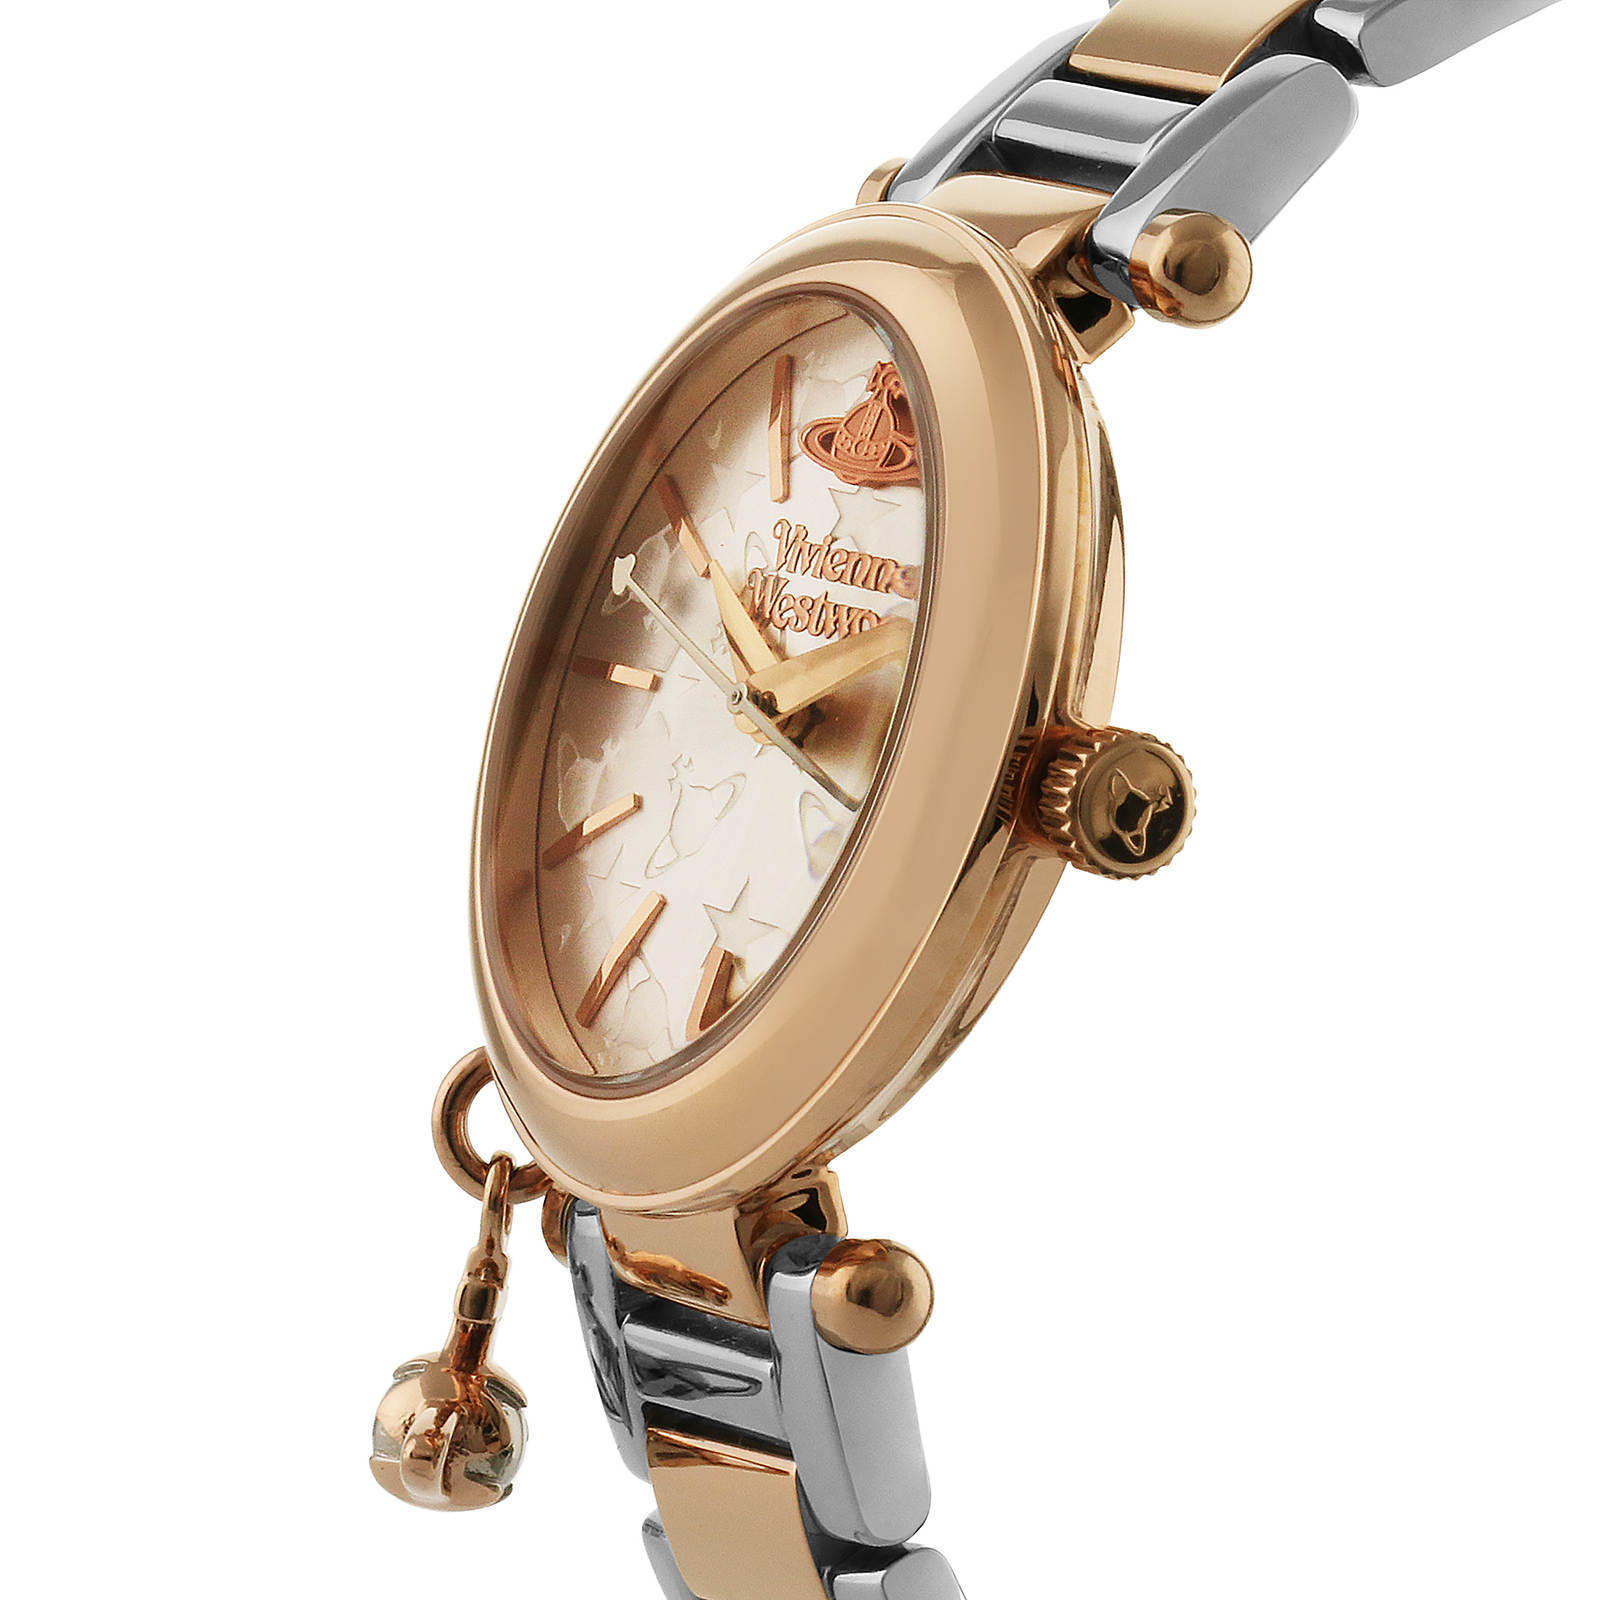 ◆Vivienne Westwood◆限定セール♪オーブチャーム付 Orb Watch